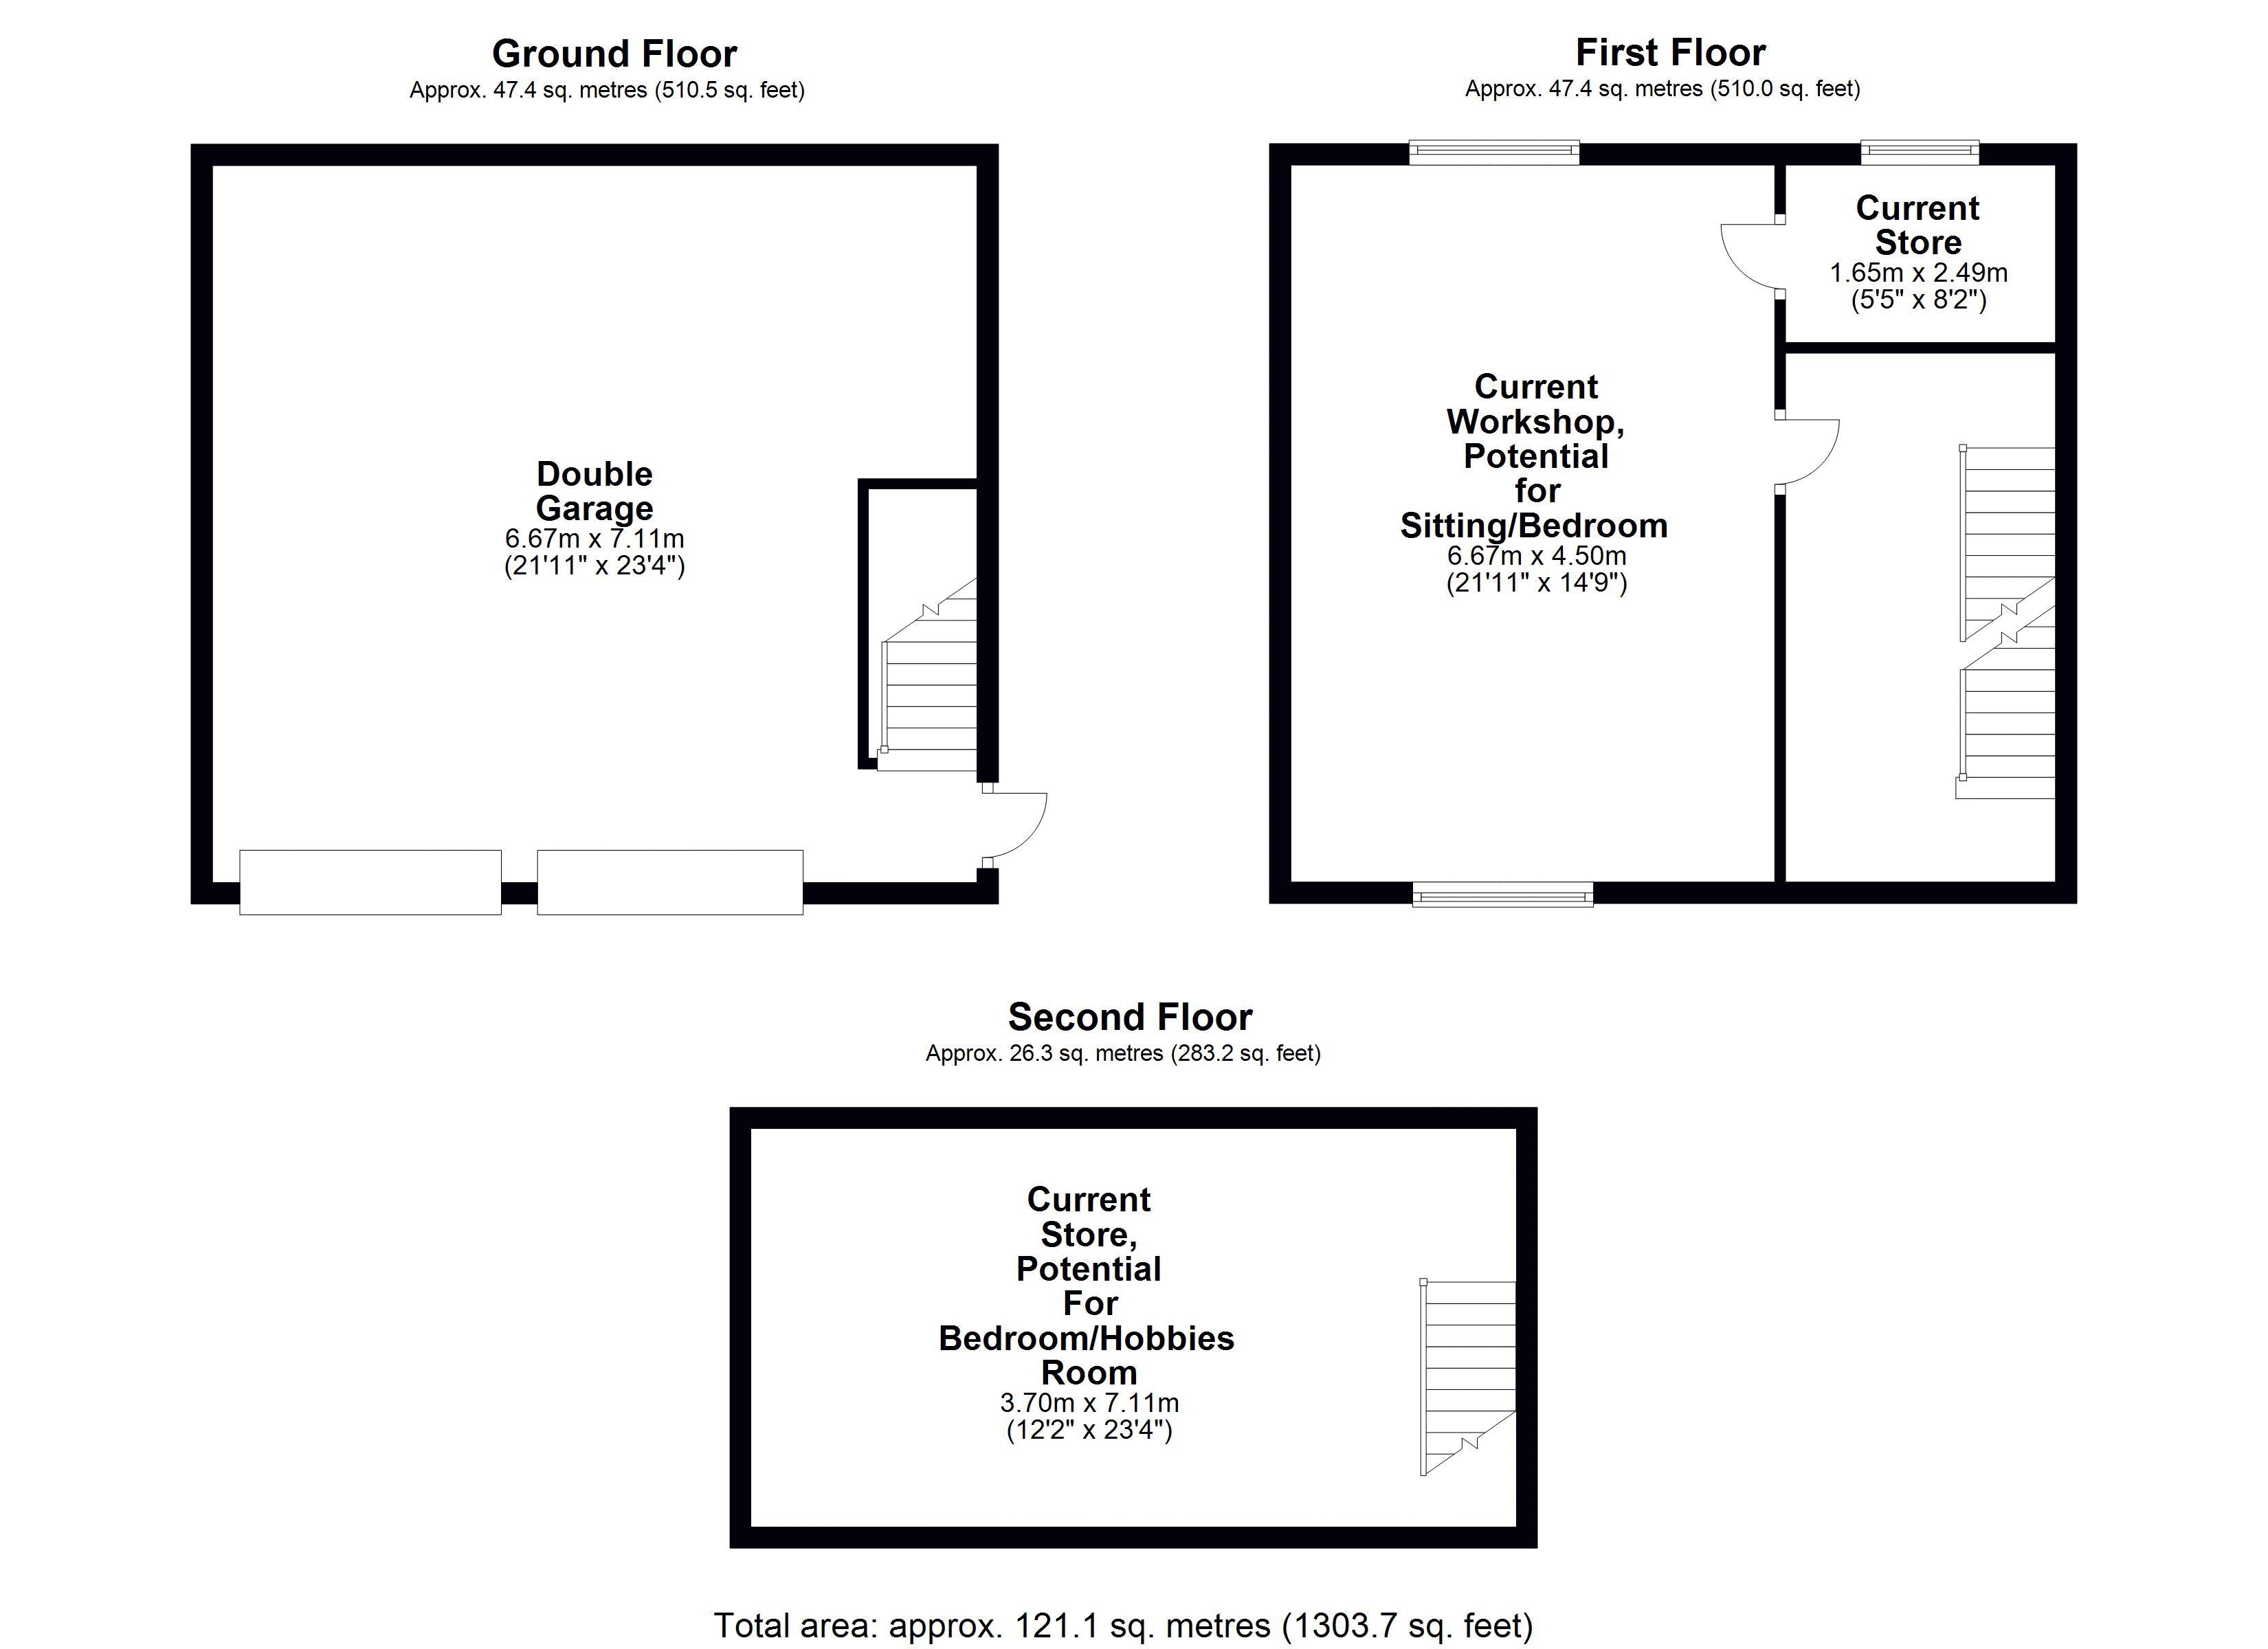 Garage Building Ground, First & Second Floor Plan